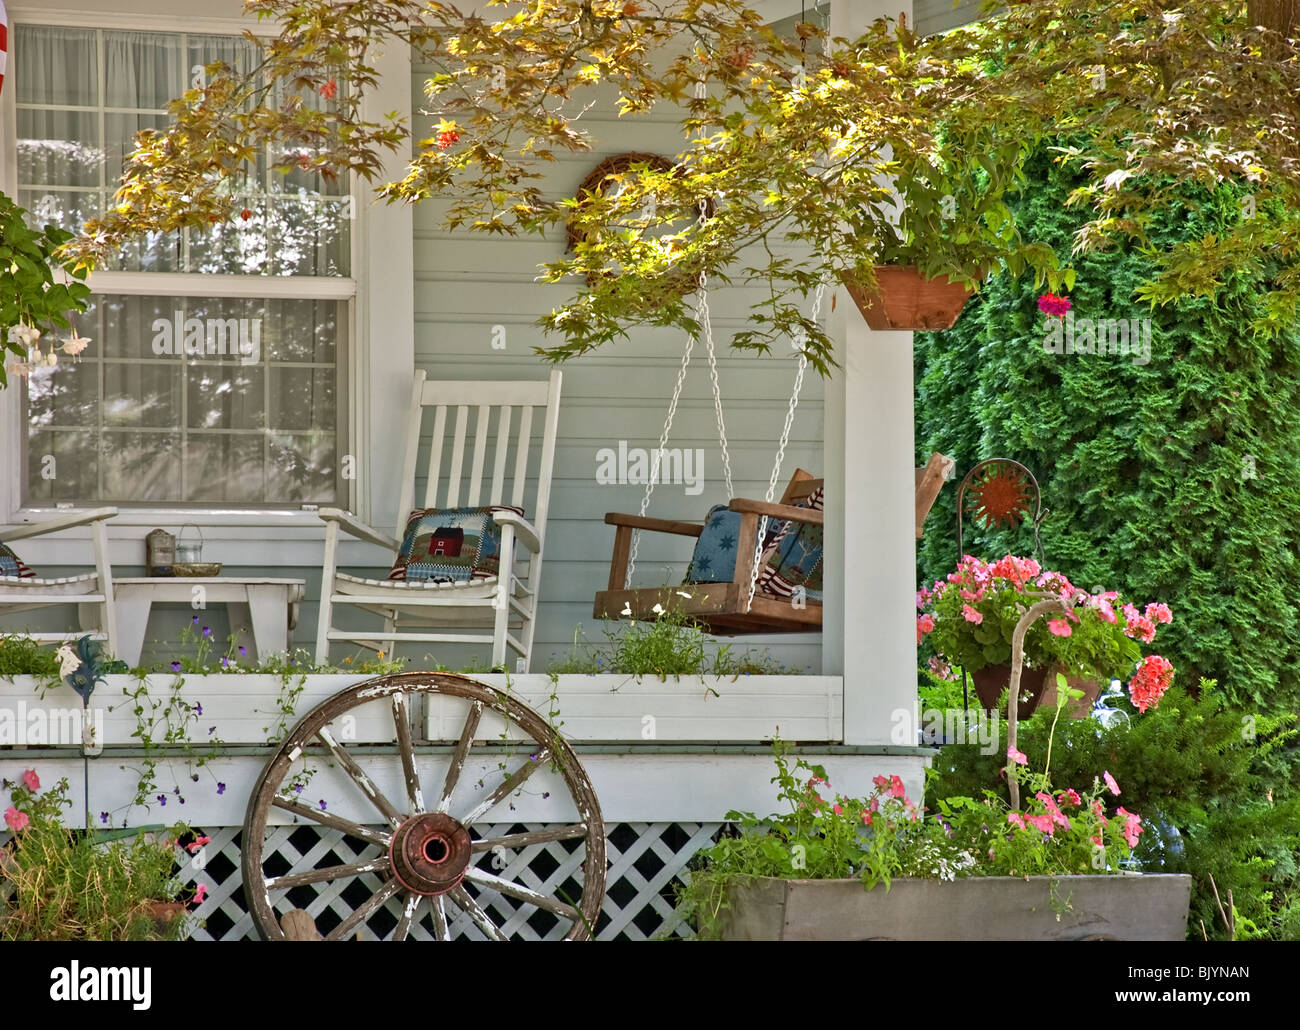 This cute welcoming scene is a detailed area of a home showing a summertime class porch scene with a swing, rocking - Stock Image